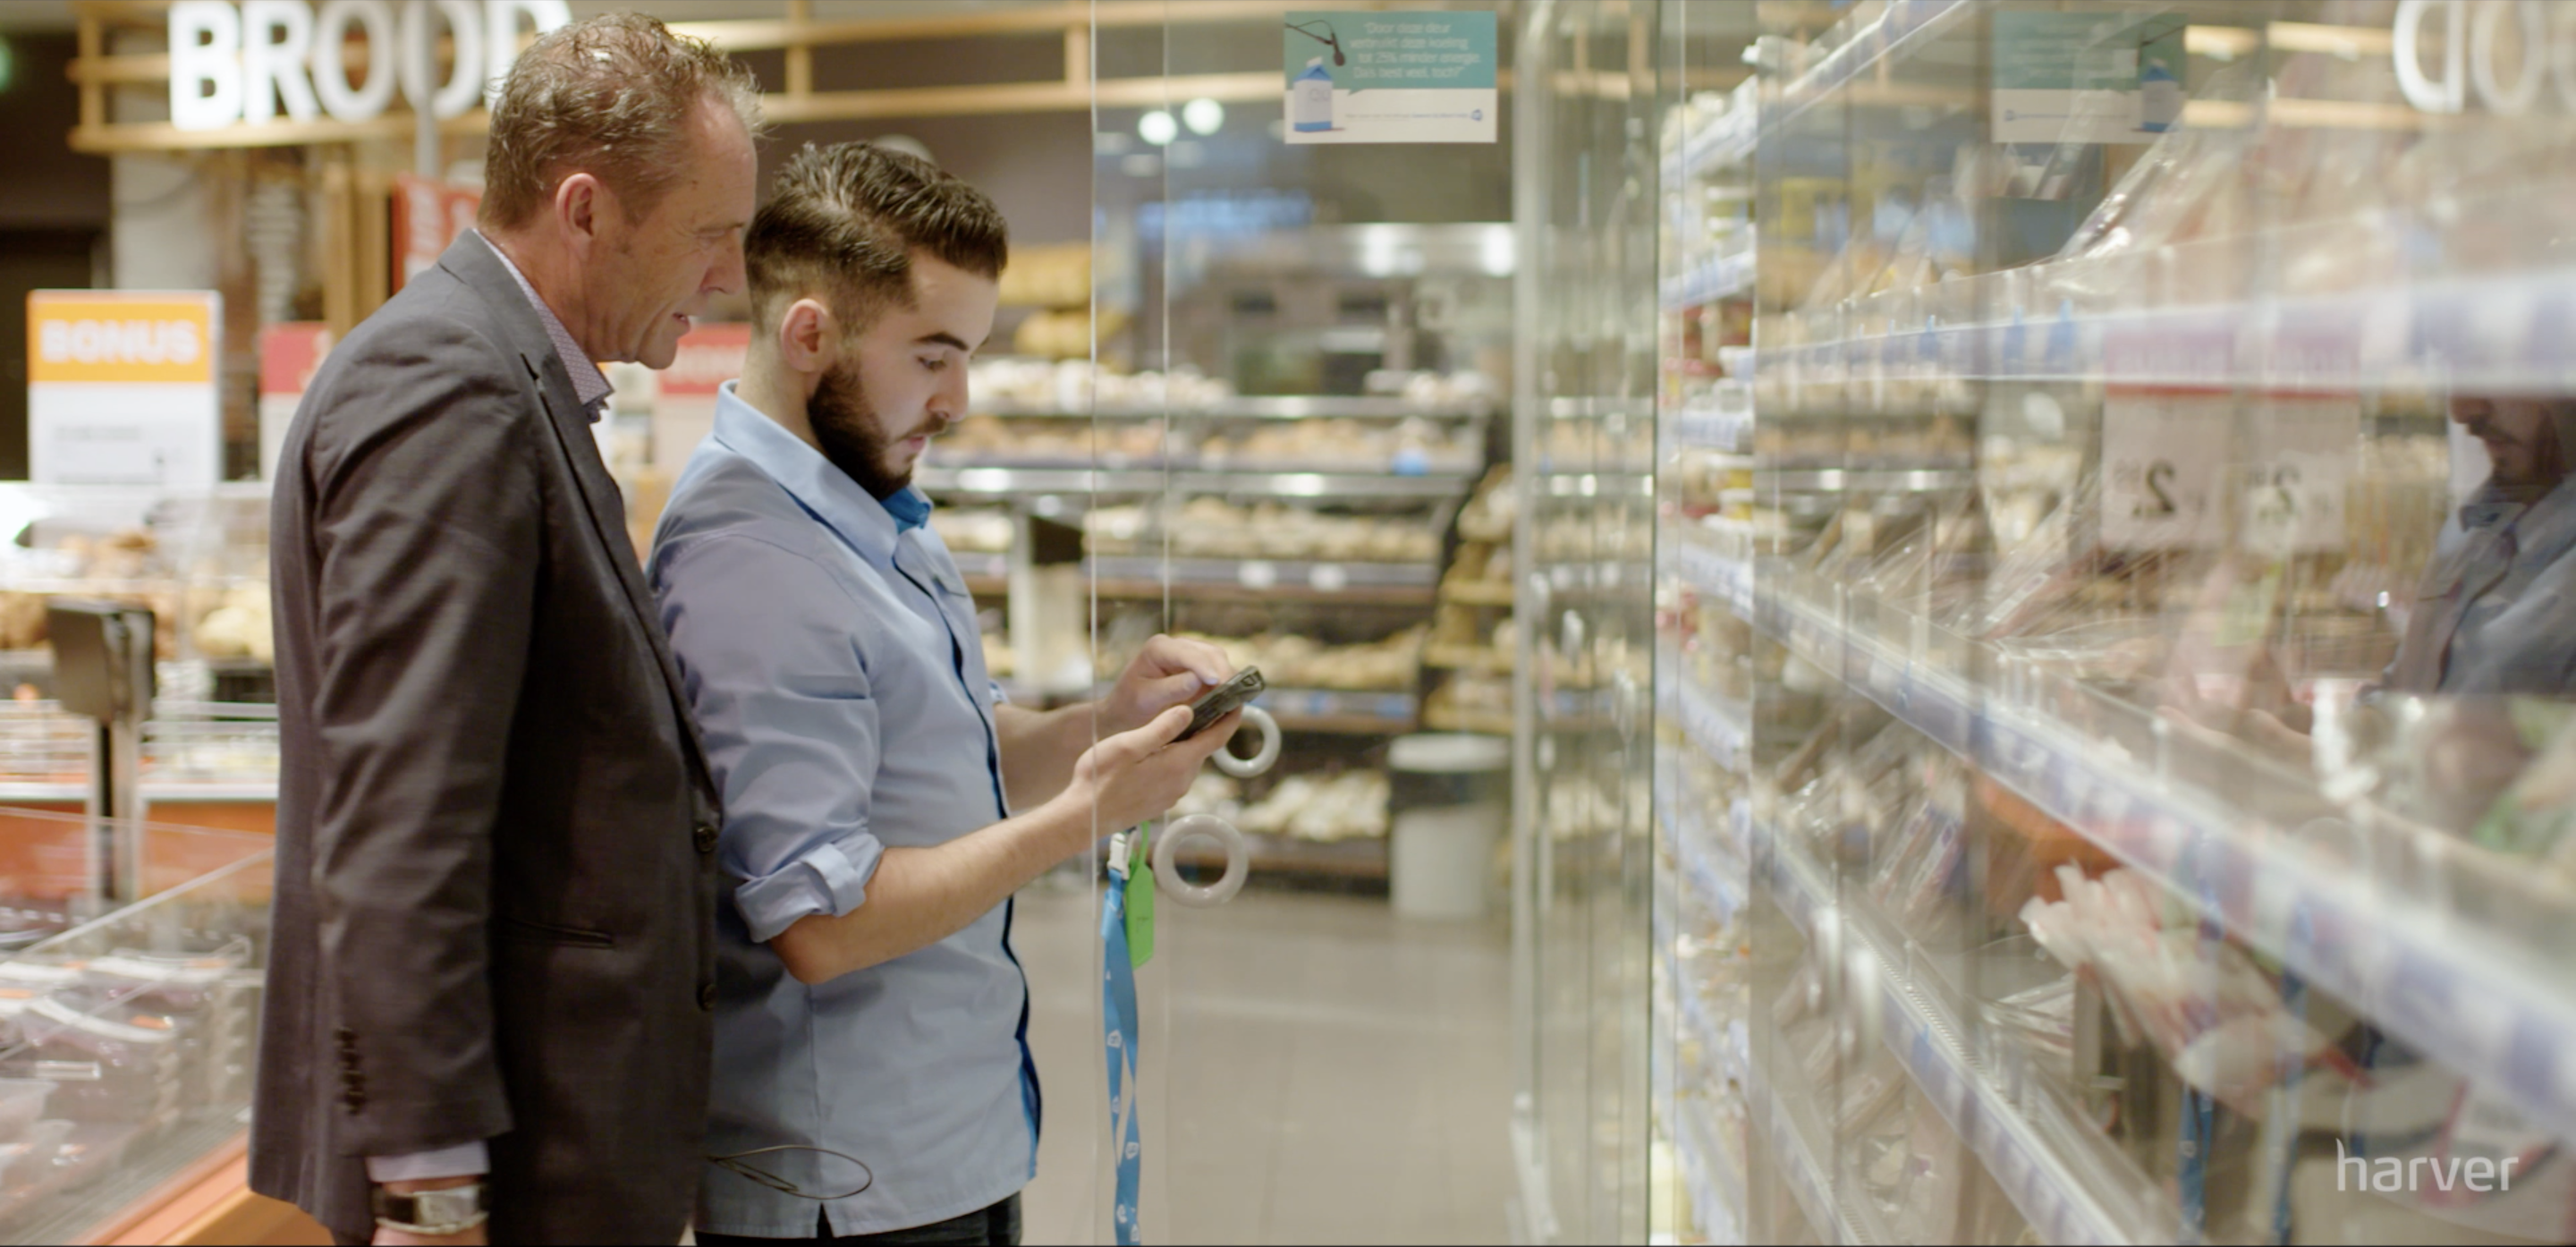 Albert Heijn empowered store managers to hire 40% faster